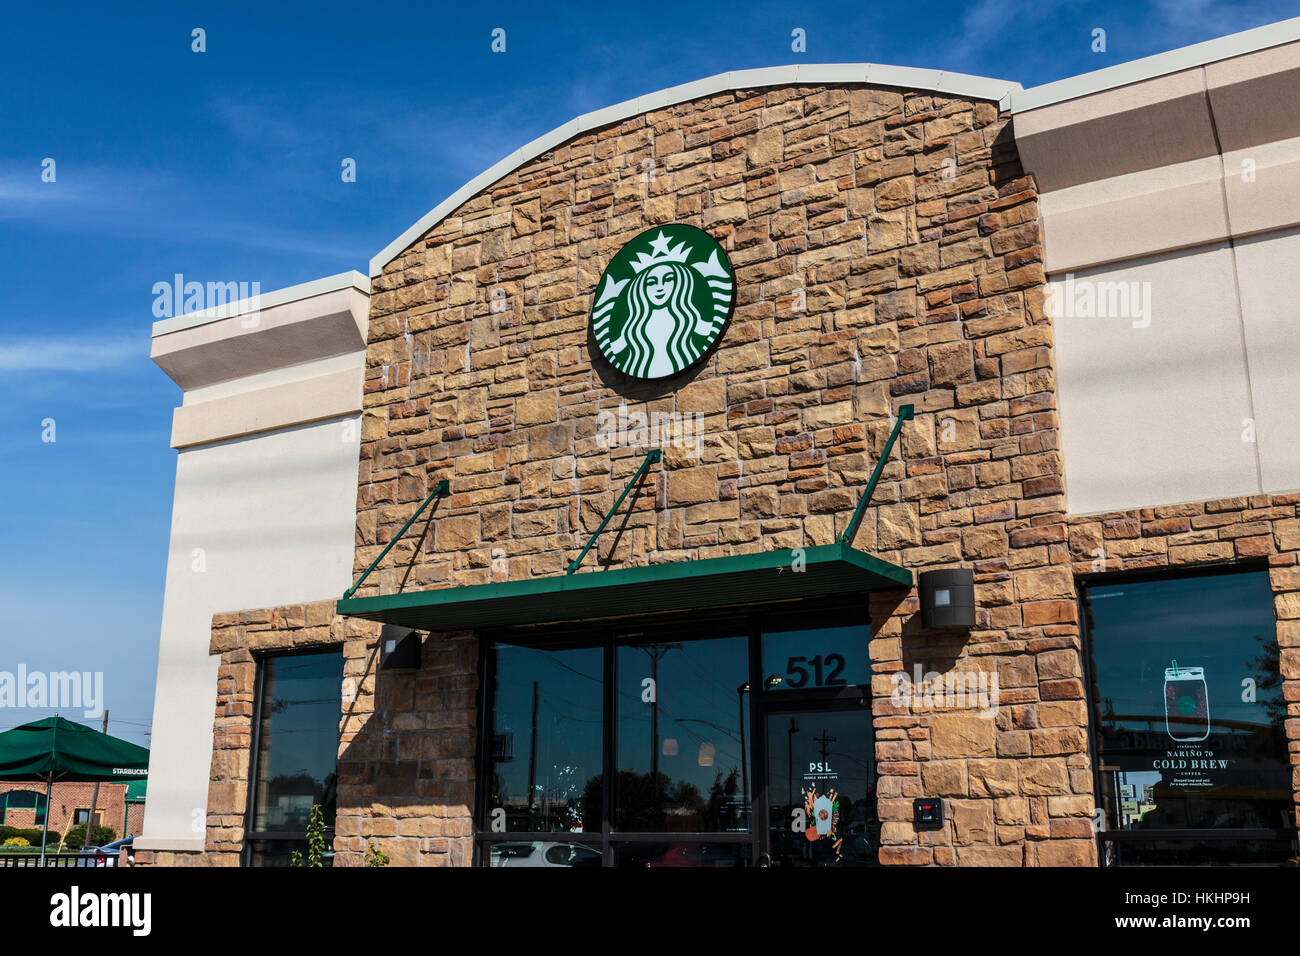 Indianapolis - Circa September 2016: Starbucks Retail Coffee Store. Starbucks is an American Retail Coffee Chain - Stock Image